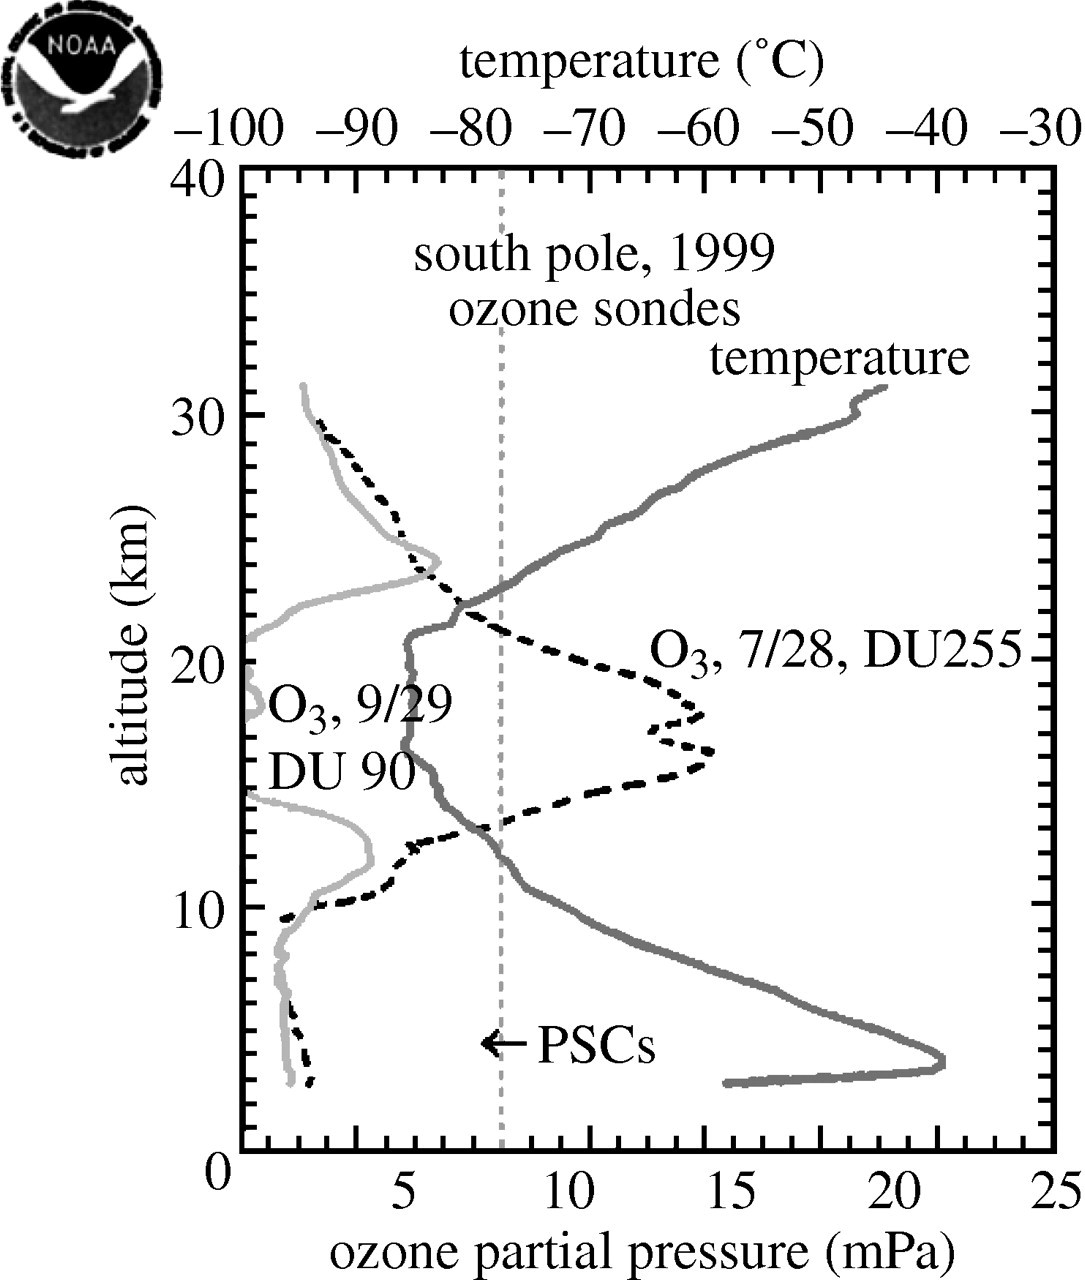 Stratospheric ozone depletion | Philosophical Transactions of the